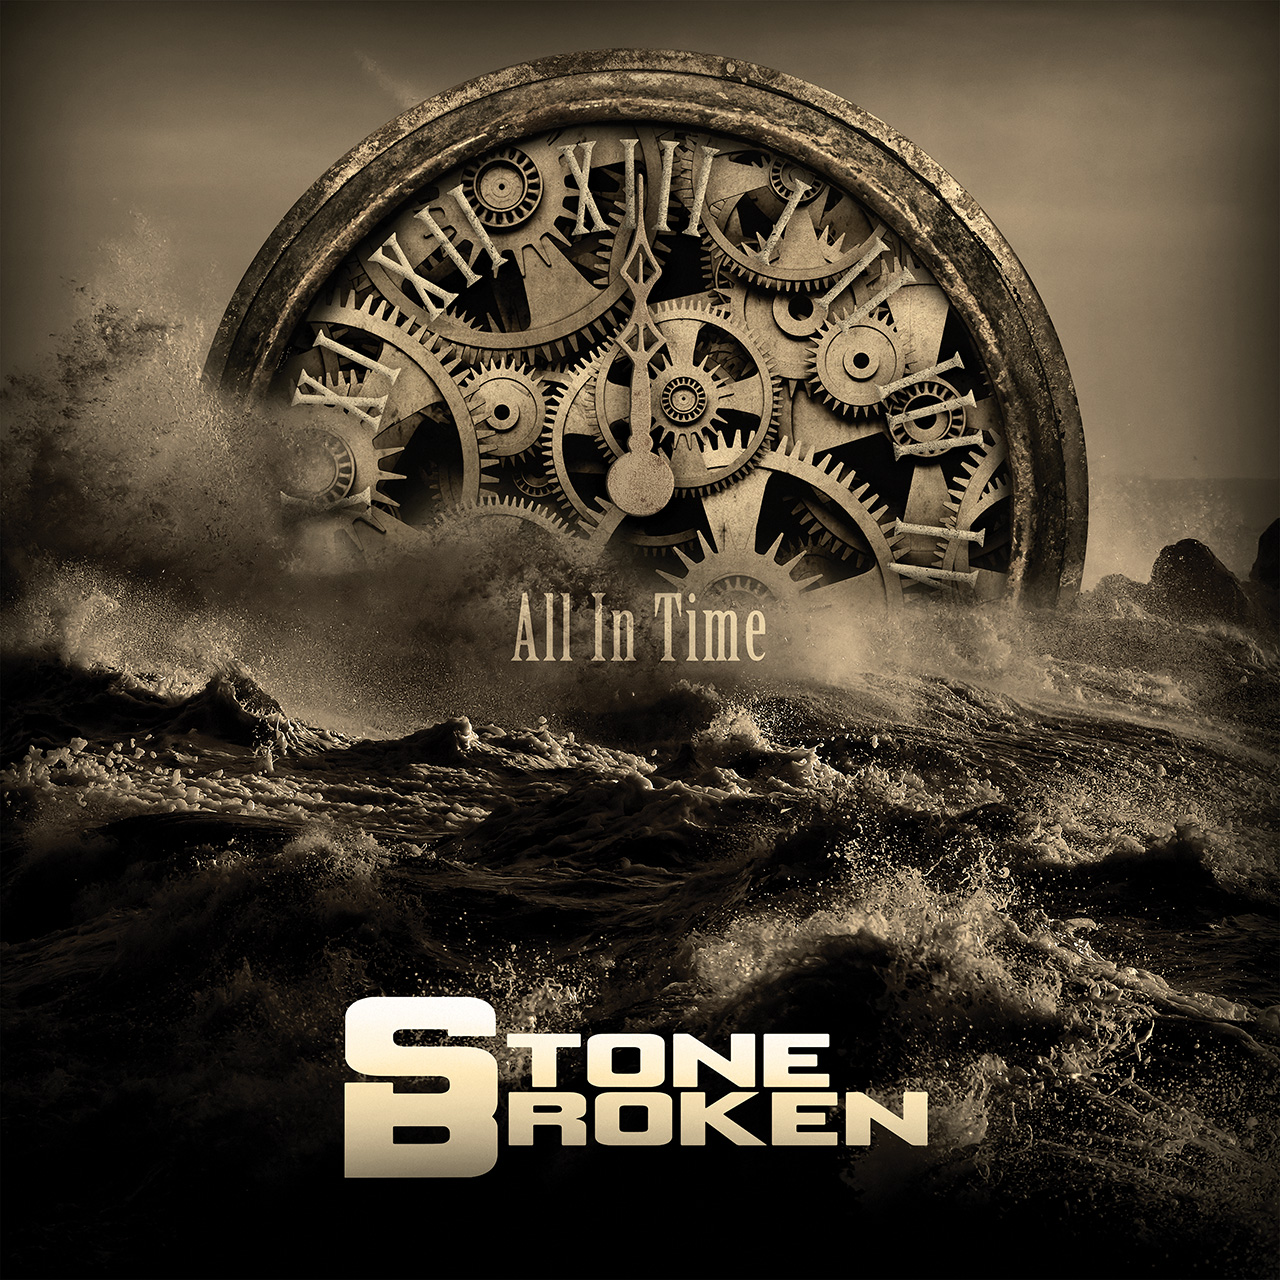 Stone Broken to re-release their debut album with bonus material | Louder